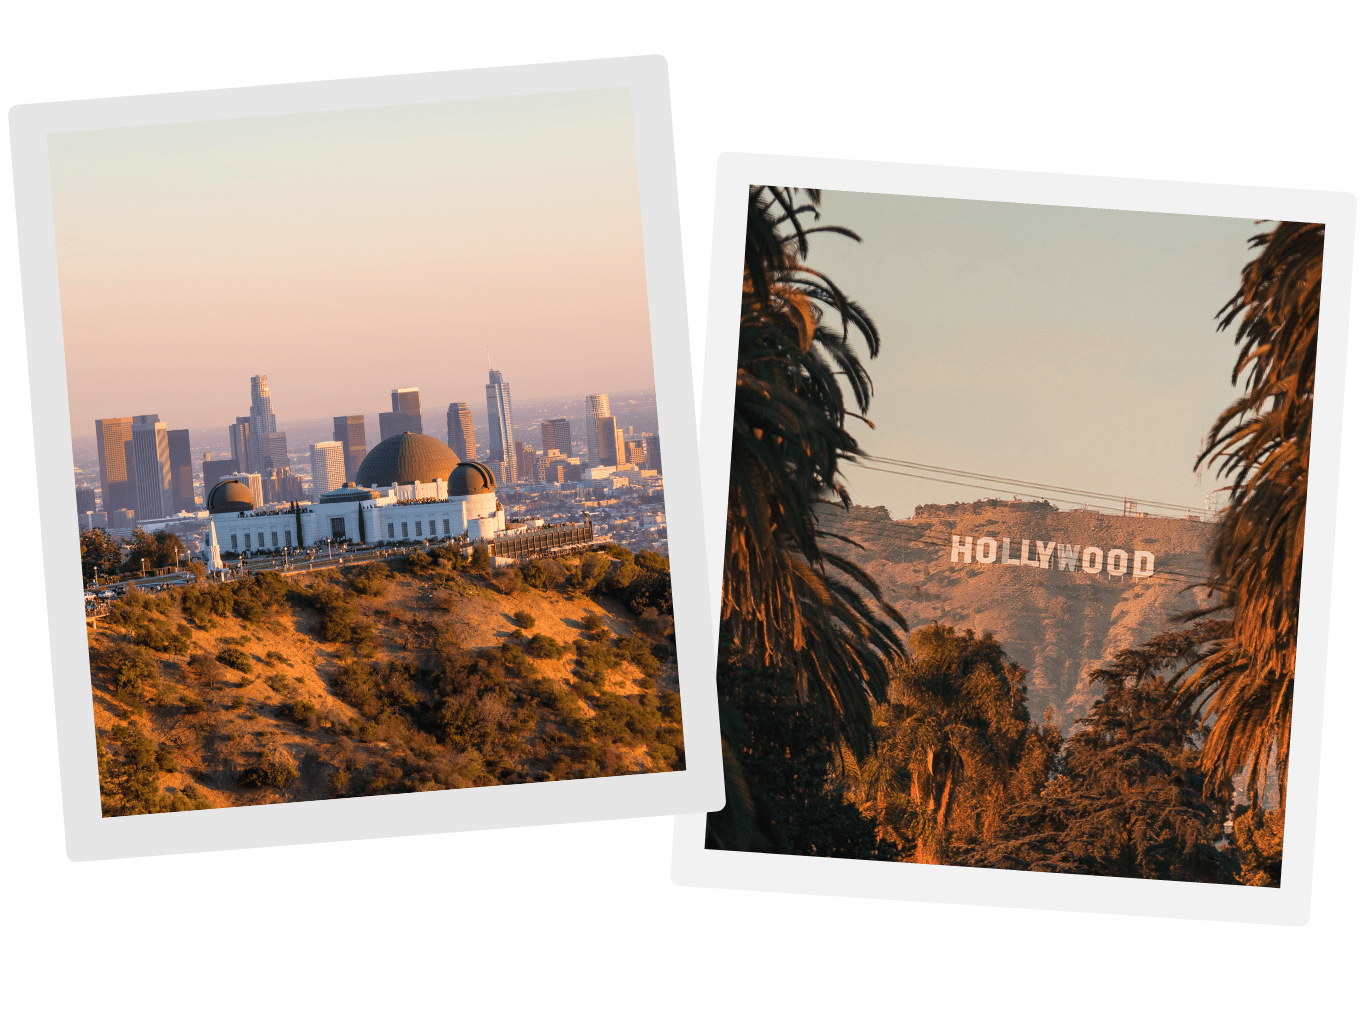 Iconic Landmarks in Los Angeles